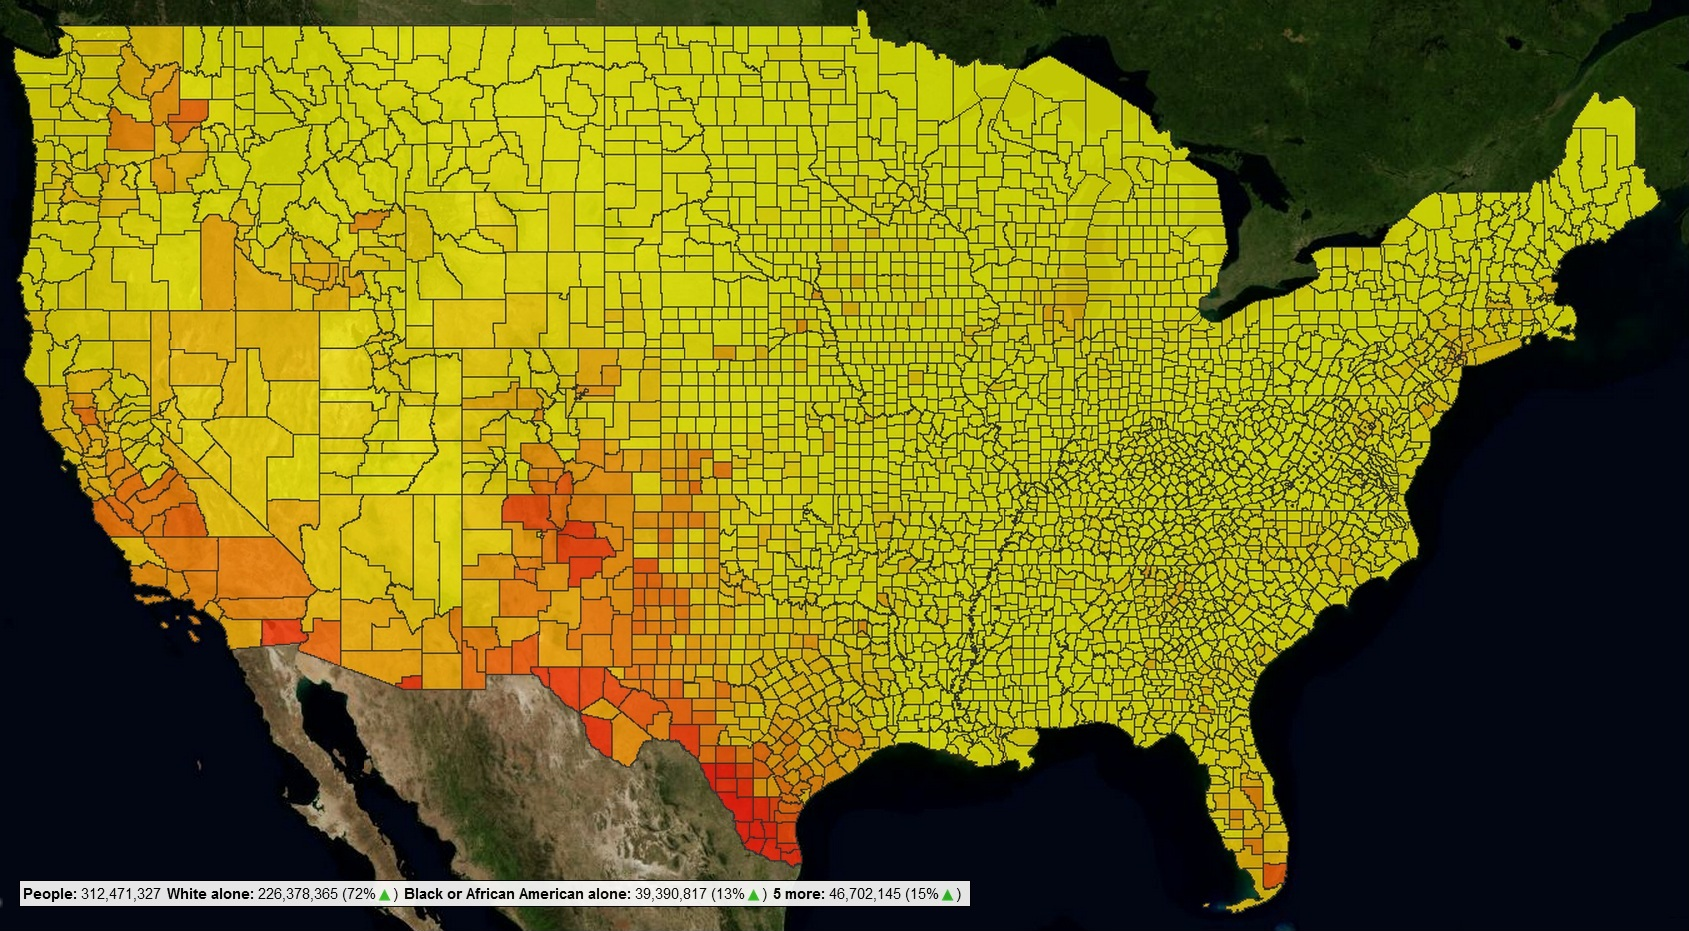 FileCensusViewer US  Census Latino Population As Heatmap By - Populatiojn of us by counties map